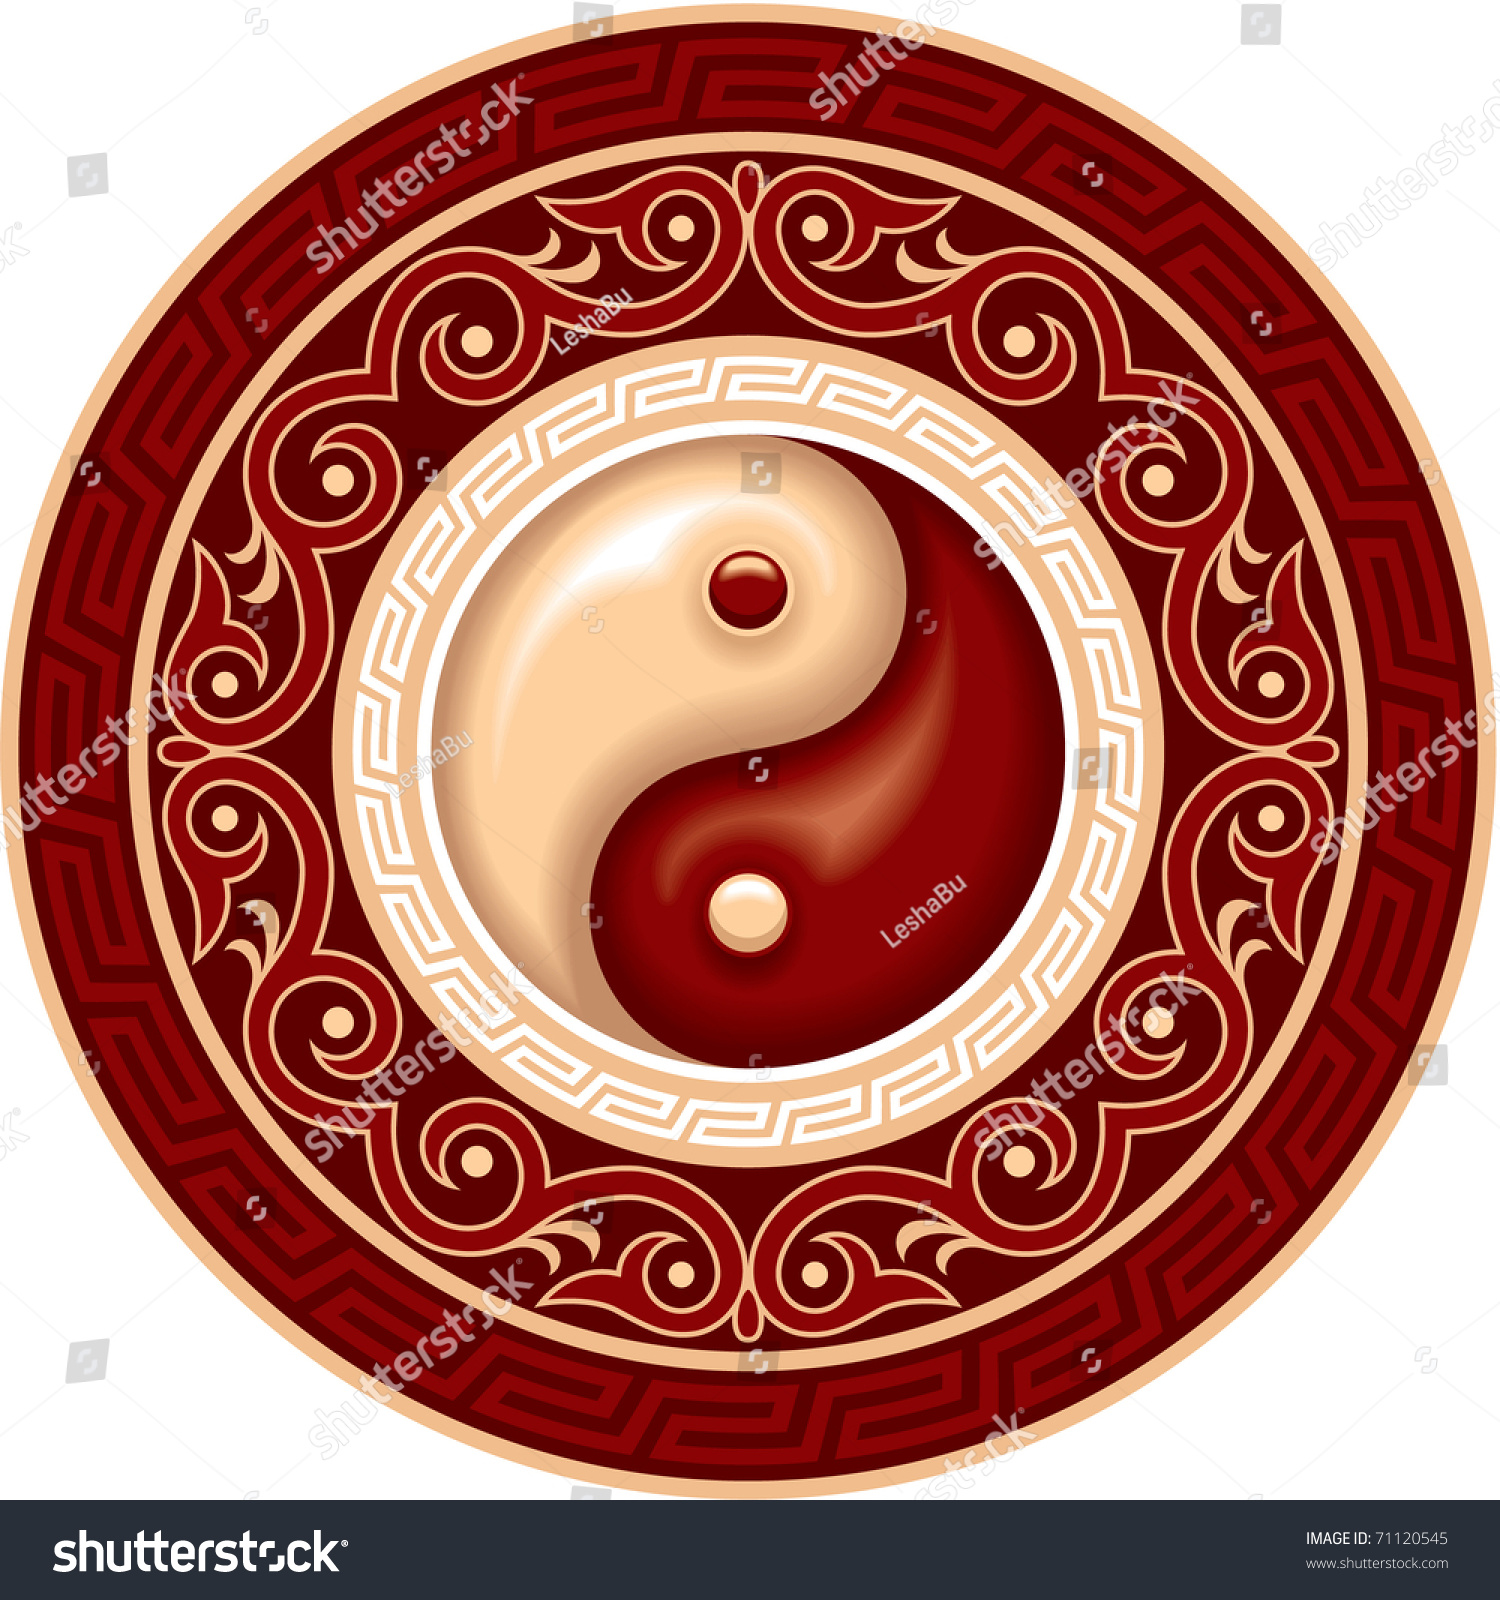 Vector ying yang symbol in round decoration plate for Decoration murale yin yang